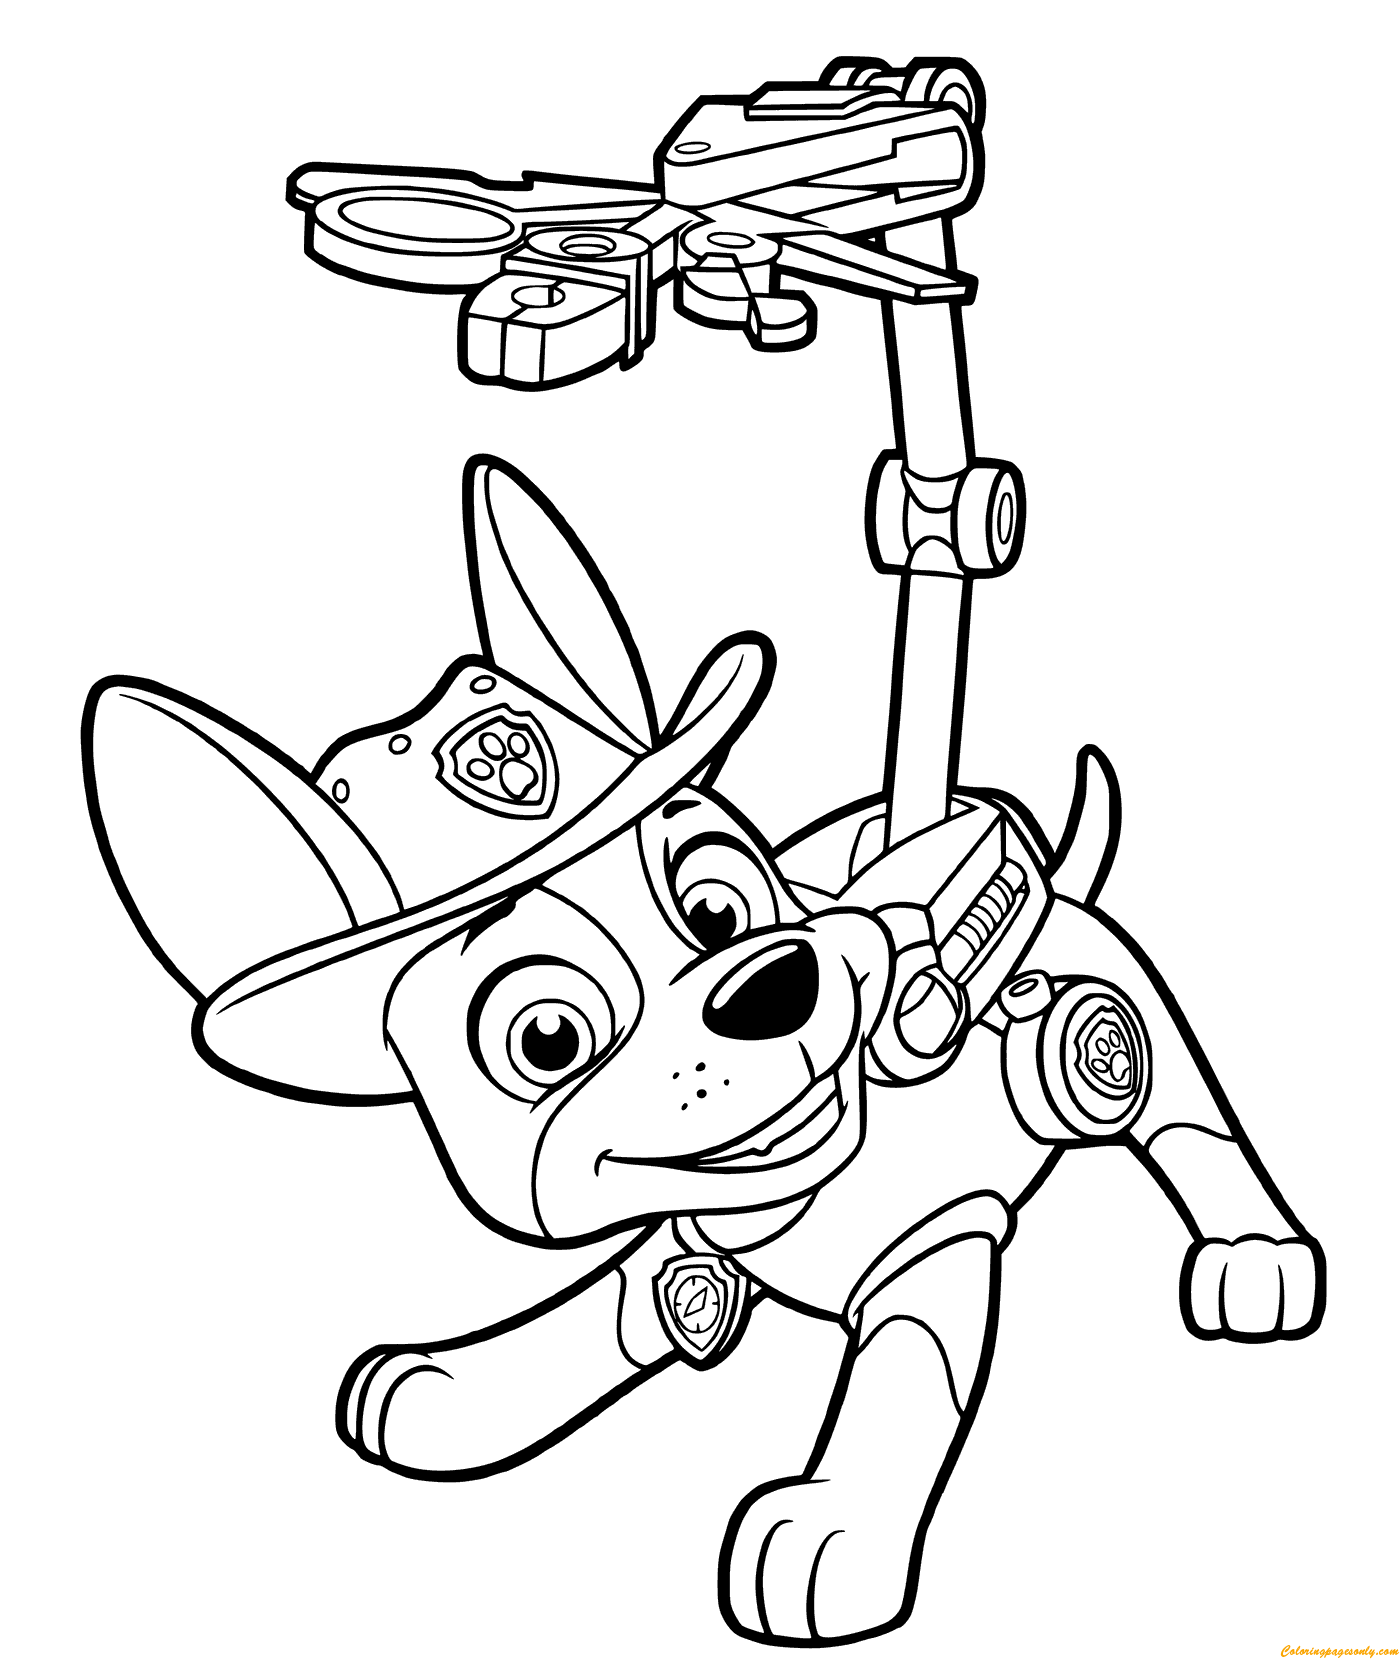 Pin By Coloring Pages On Paw Patrol Coloring Pages Paw